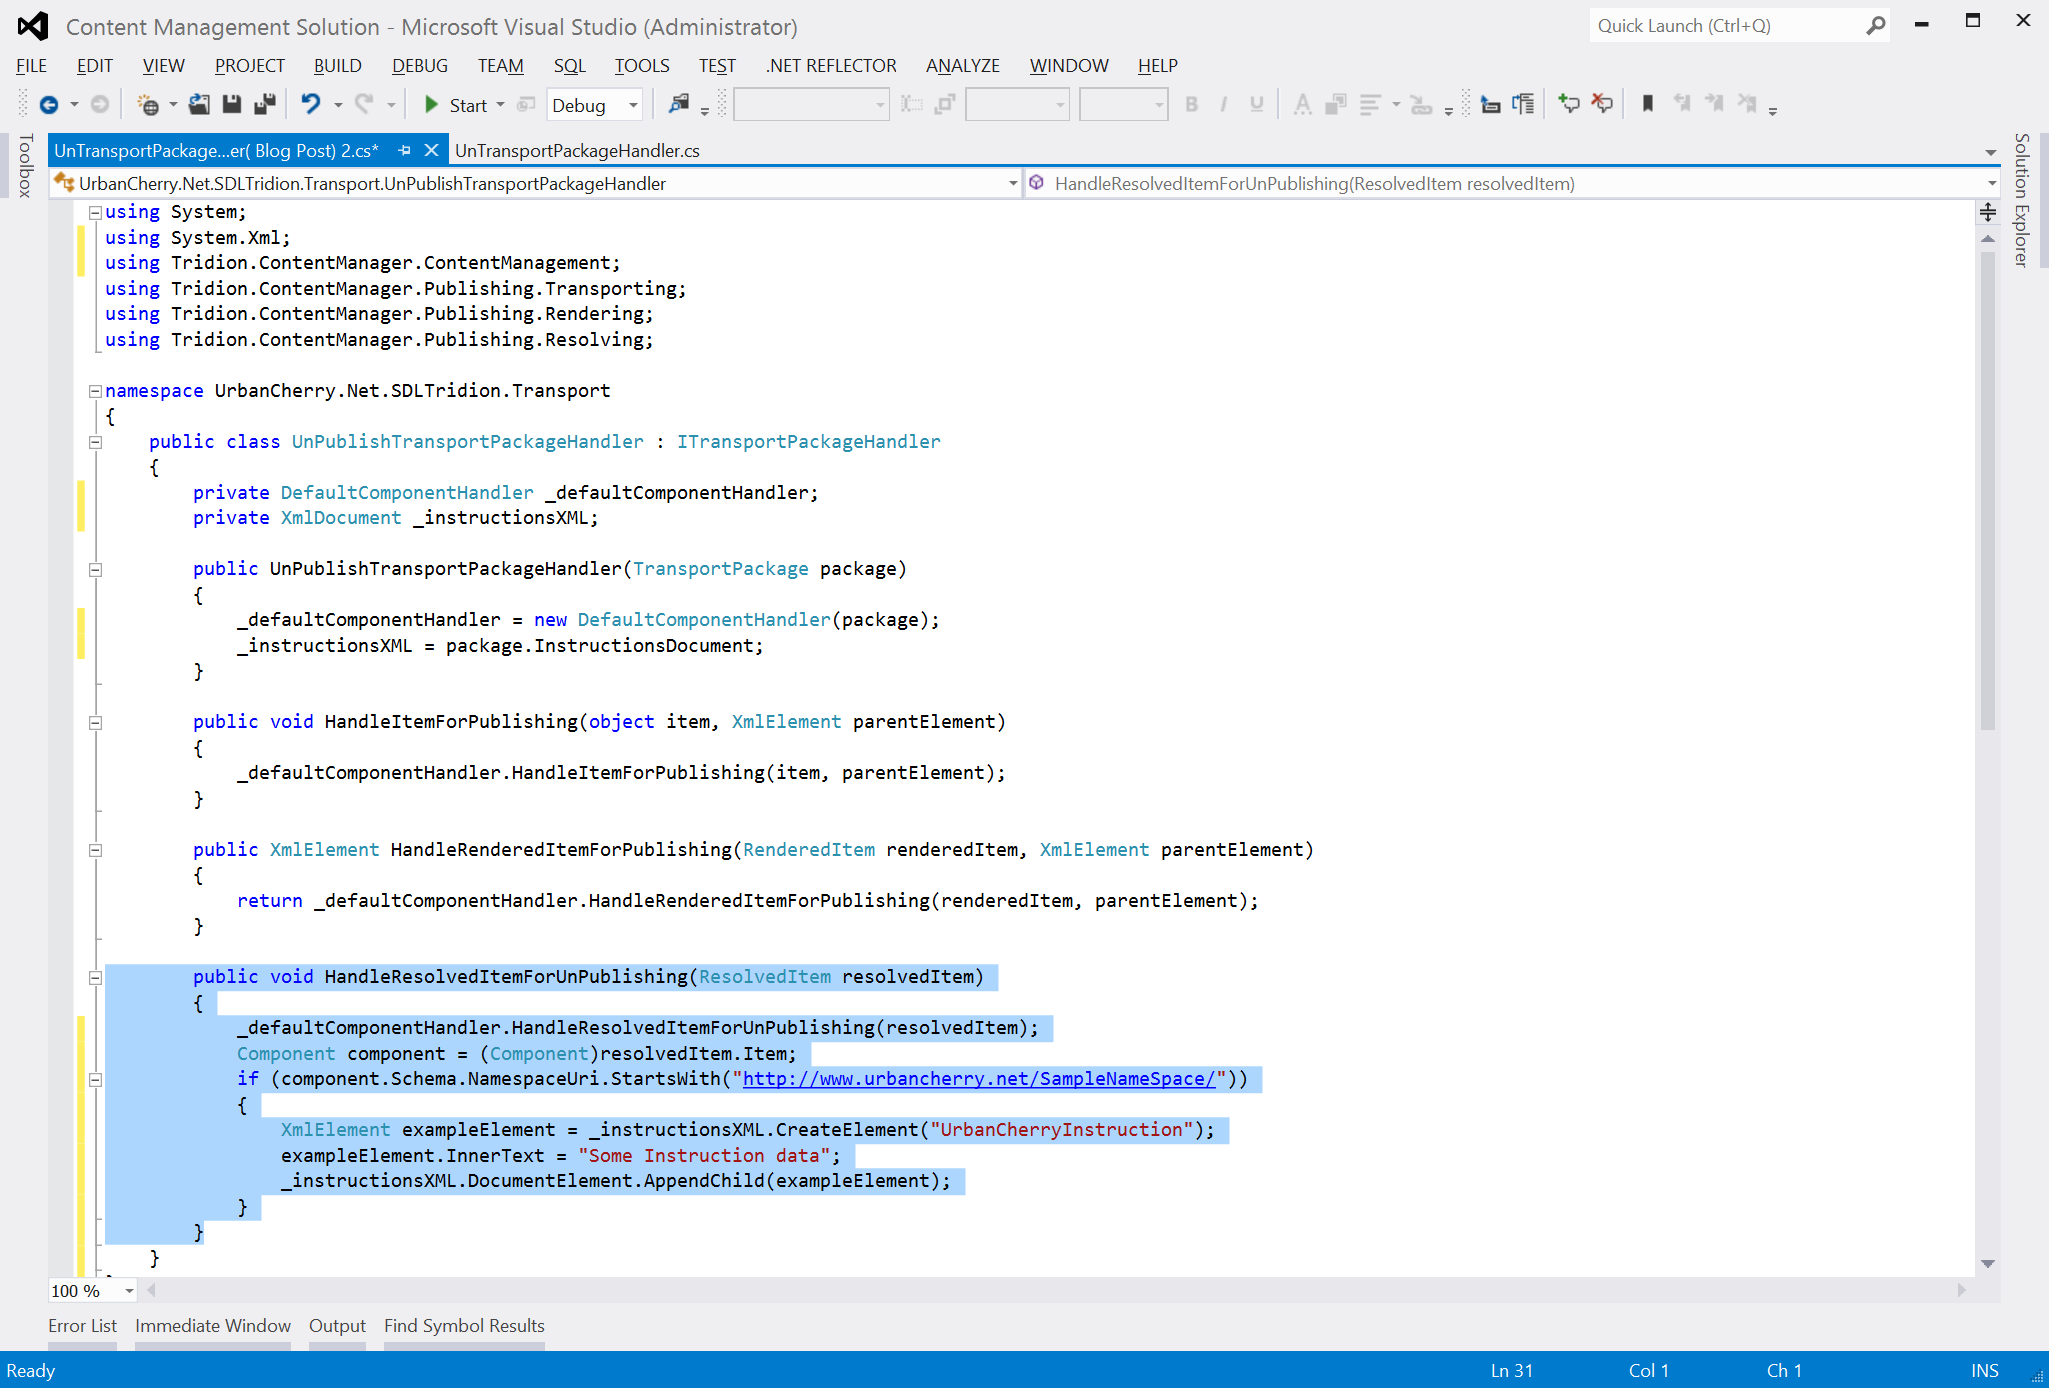 Adding to the instructions XML